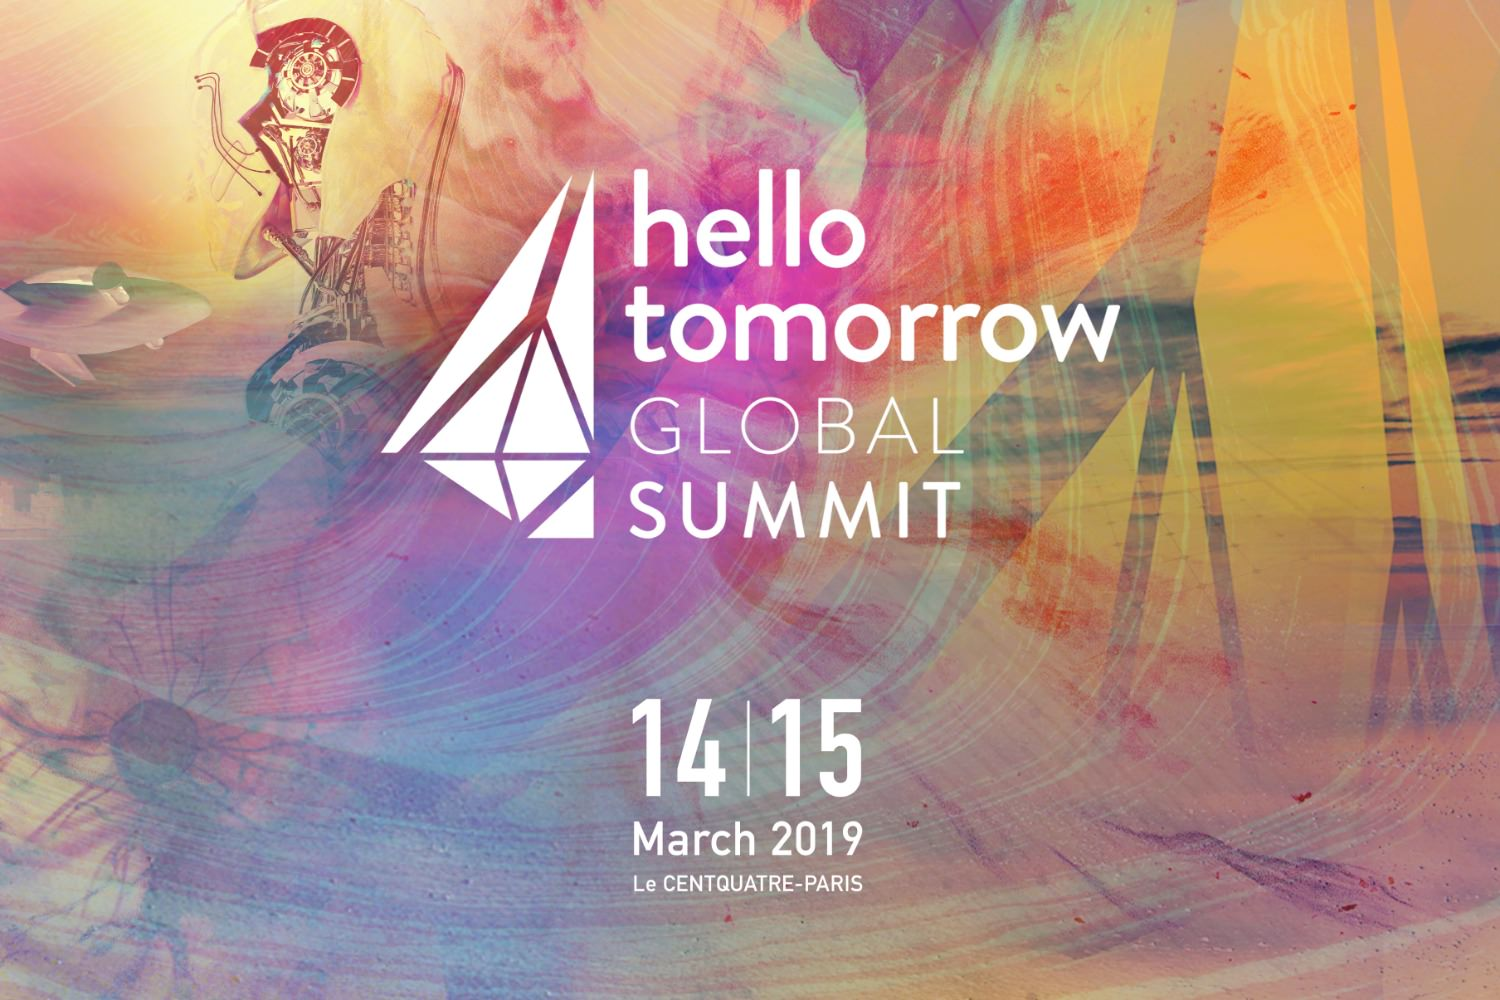 Hello Tomorrow Global Summit 2019